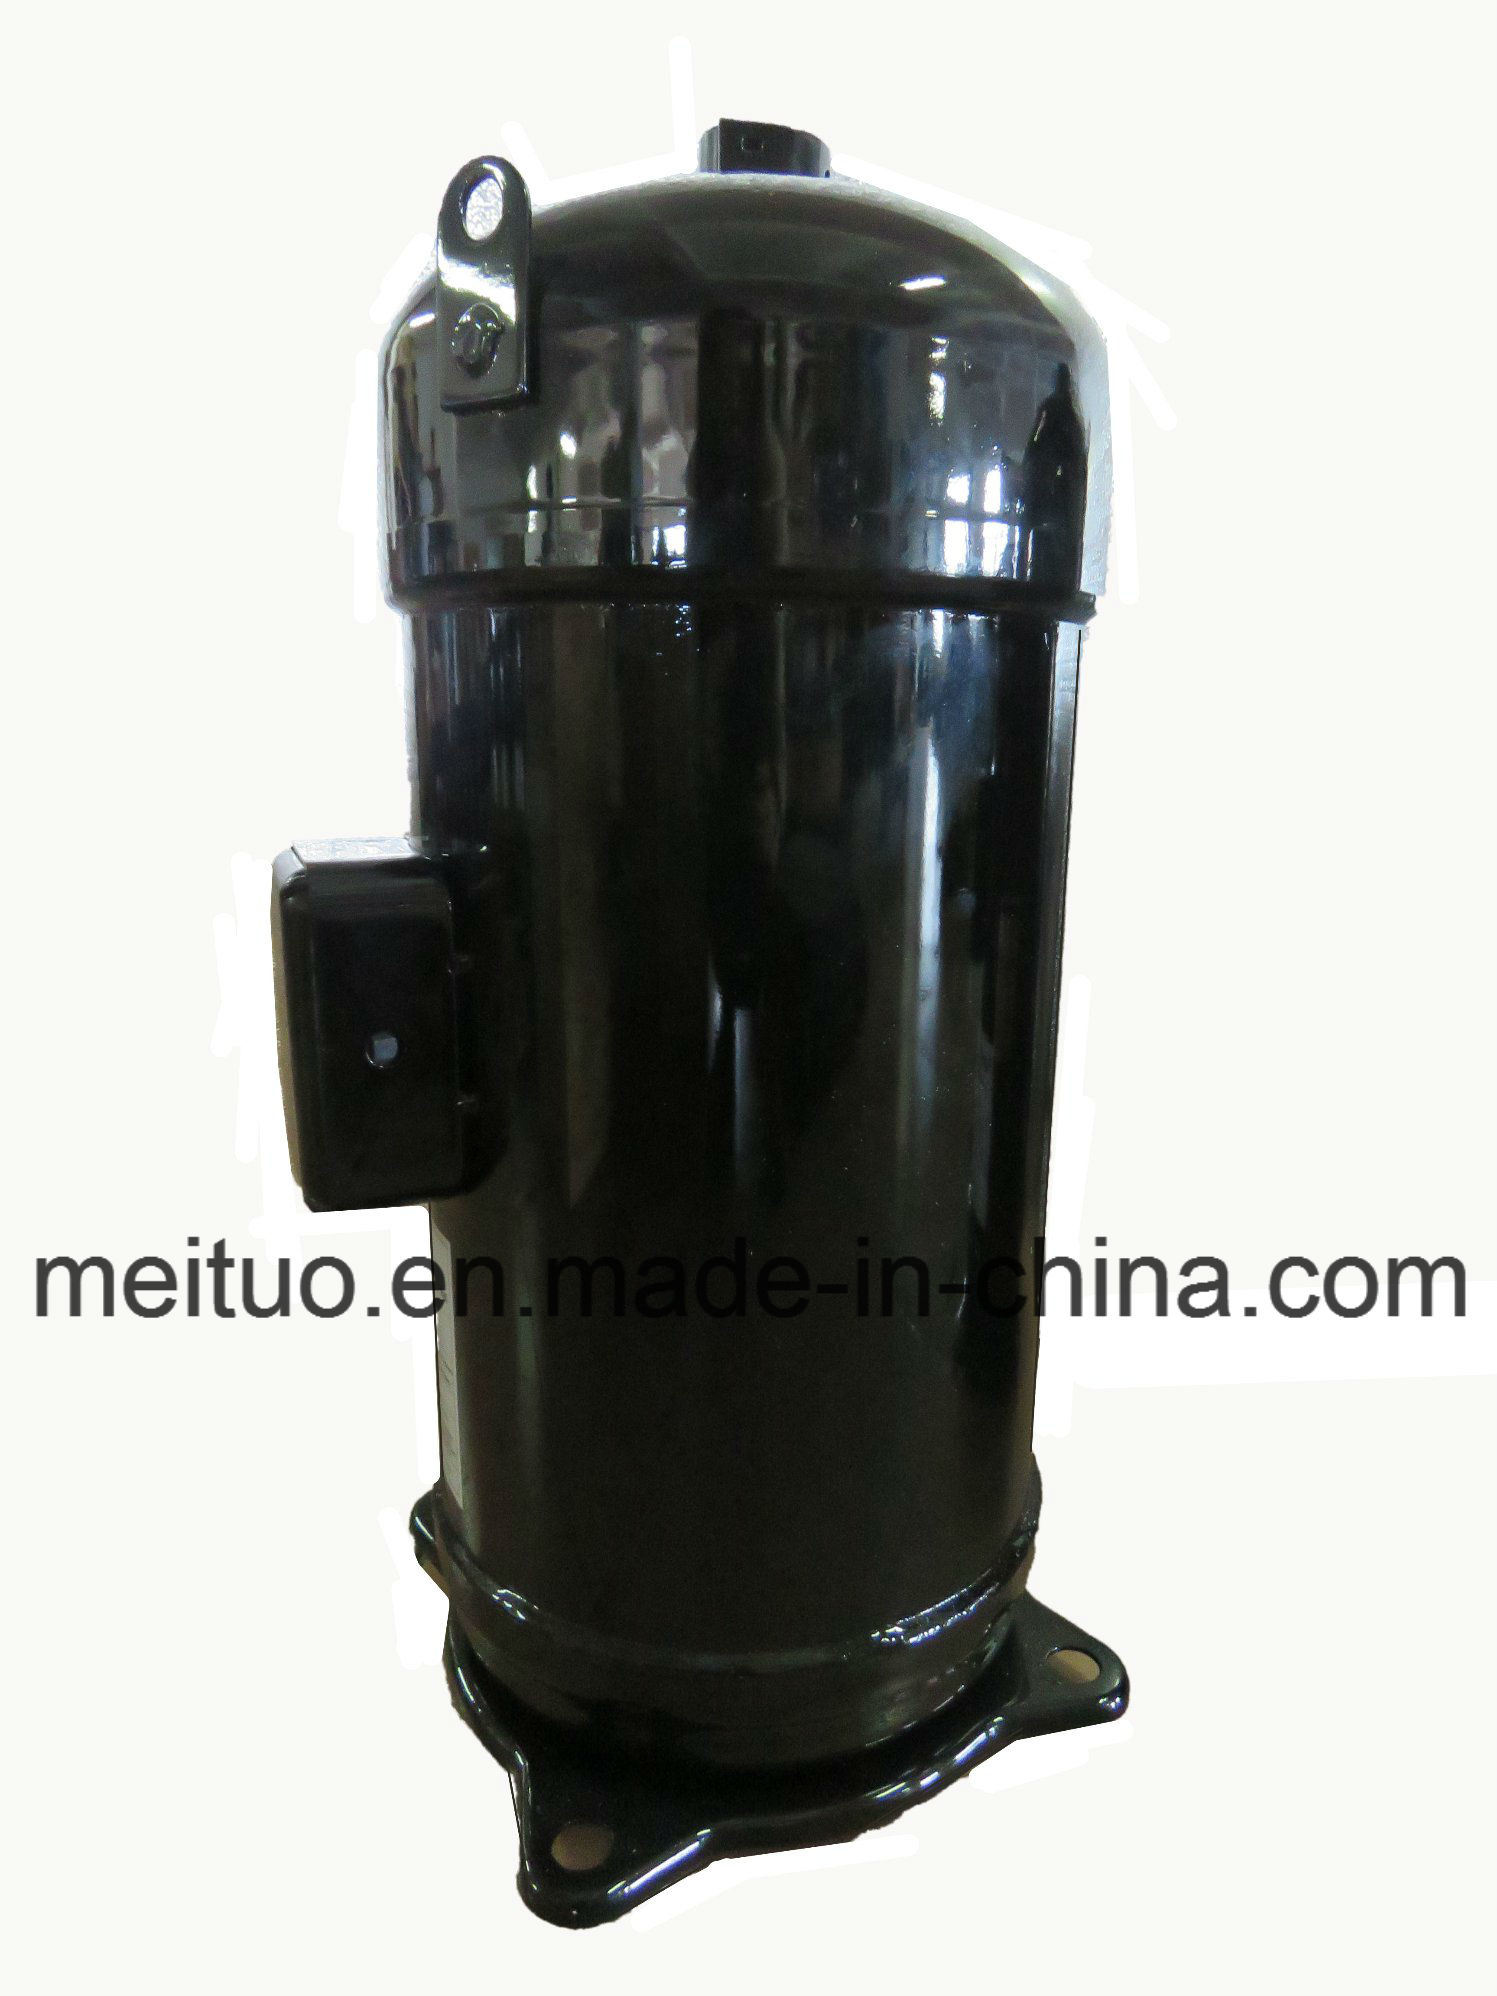 Air Conditioner Compressor Price >> China Low Price Of Air Conditioner Compressor Parts Daikin